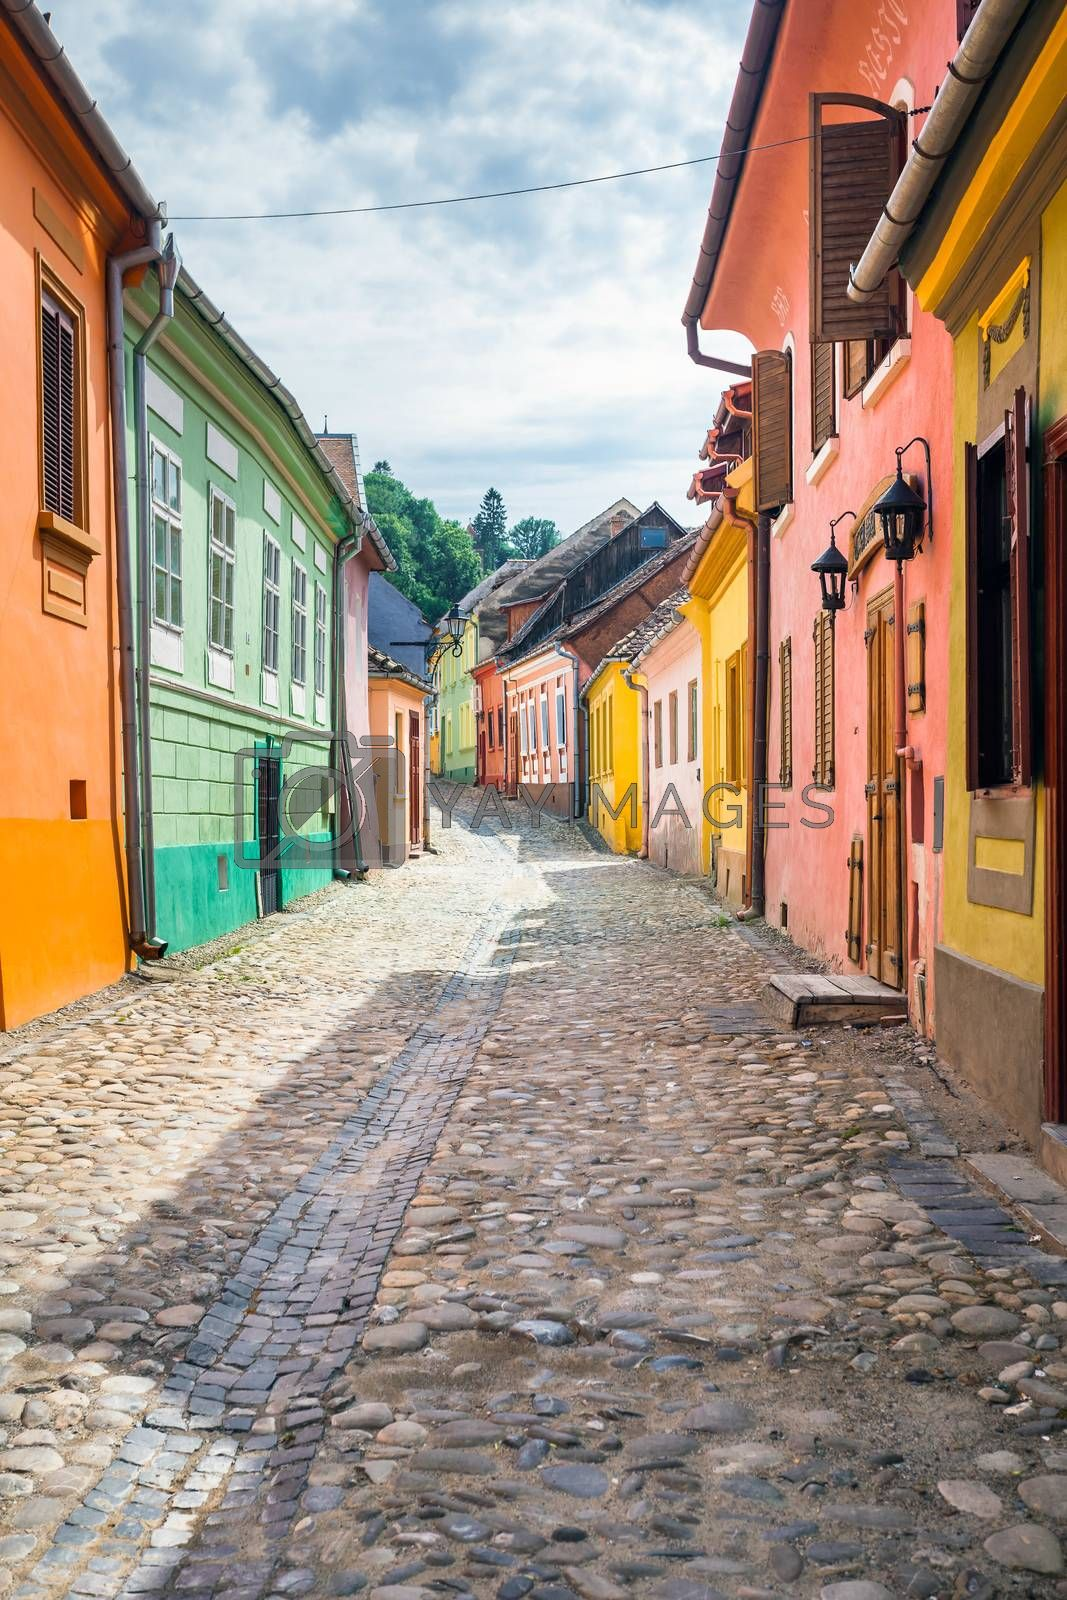 Sighisoara, Romania - June 23, 2013: Stone paved old streets with colored houses from Sighisoara fortresss, Transylvania, Romania